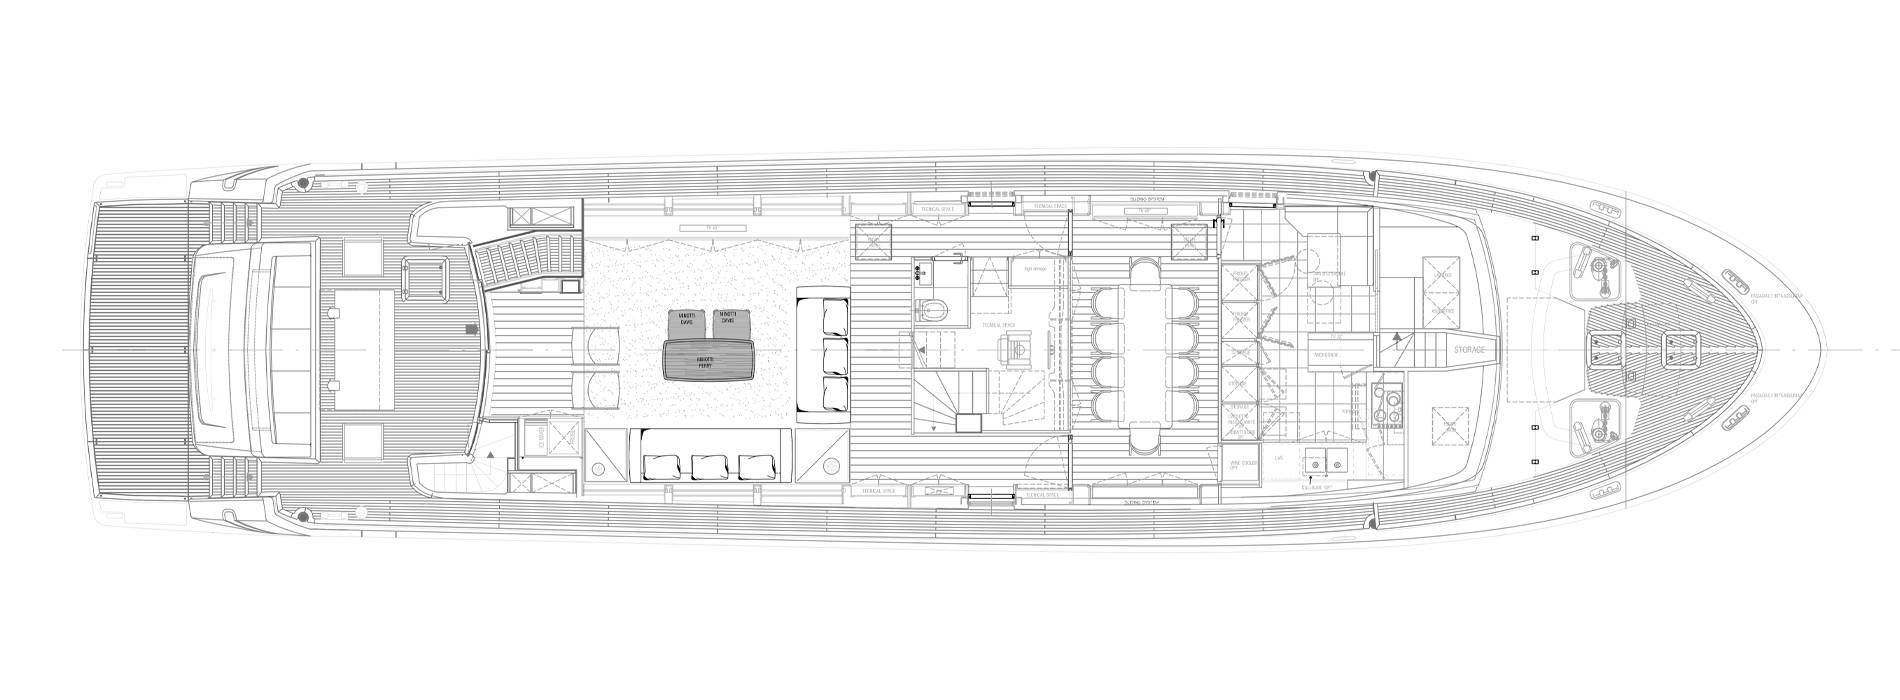 Sanlorenzo Yachts SL96-631 under offer Main deck